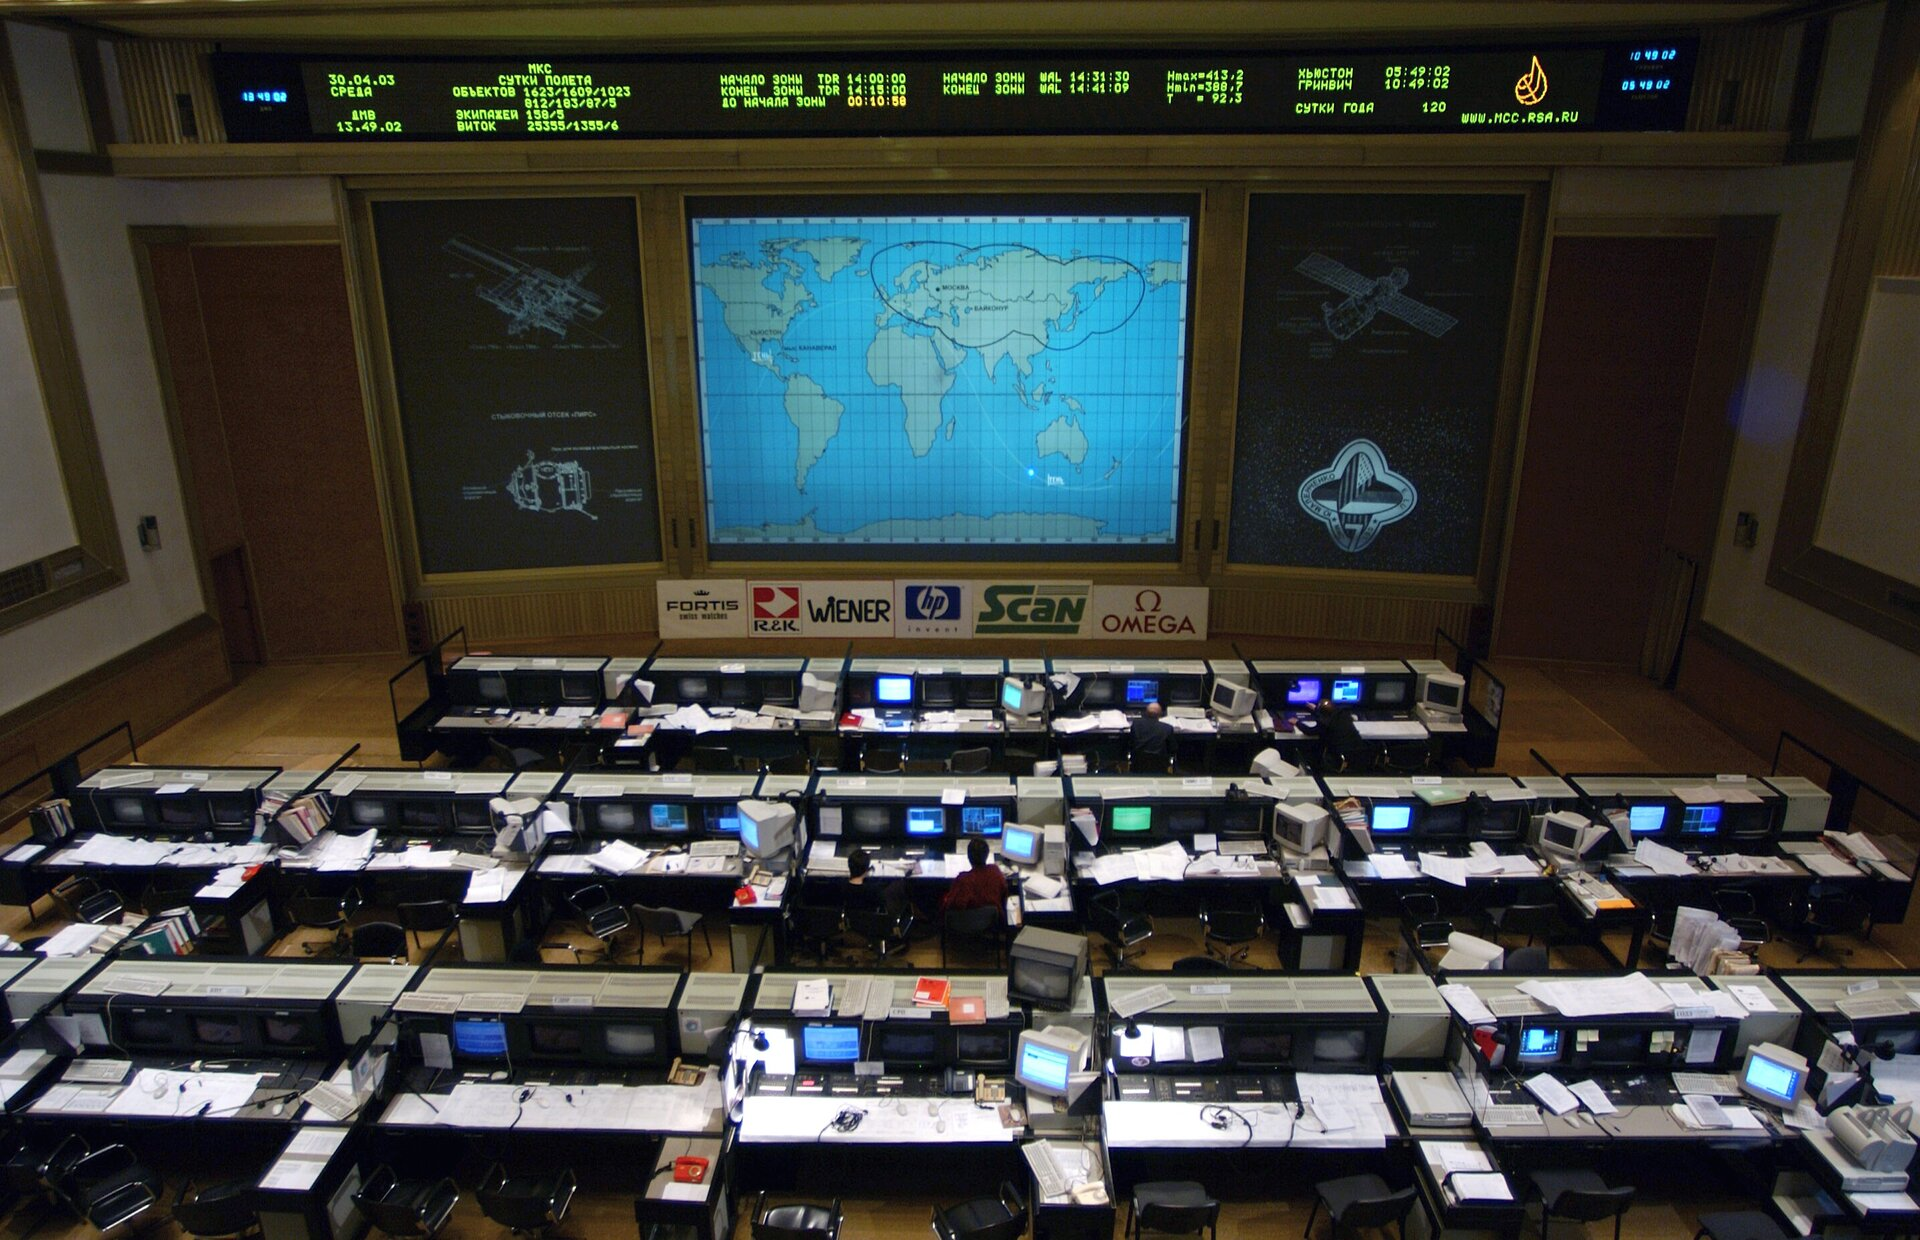 Mission control centre in Moscow